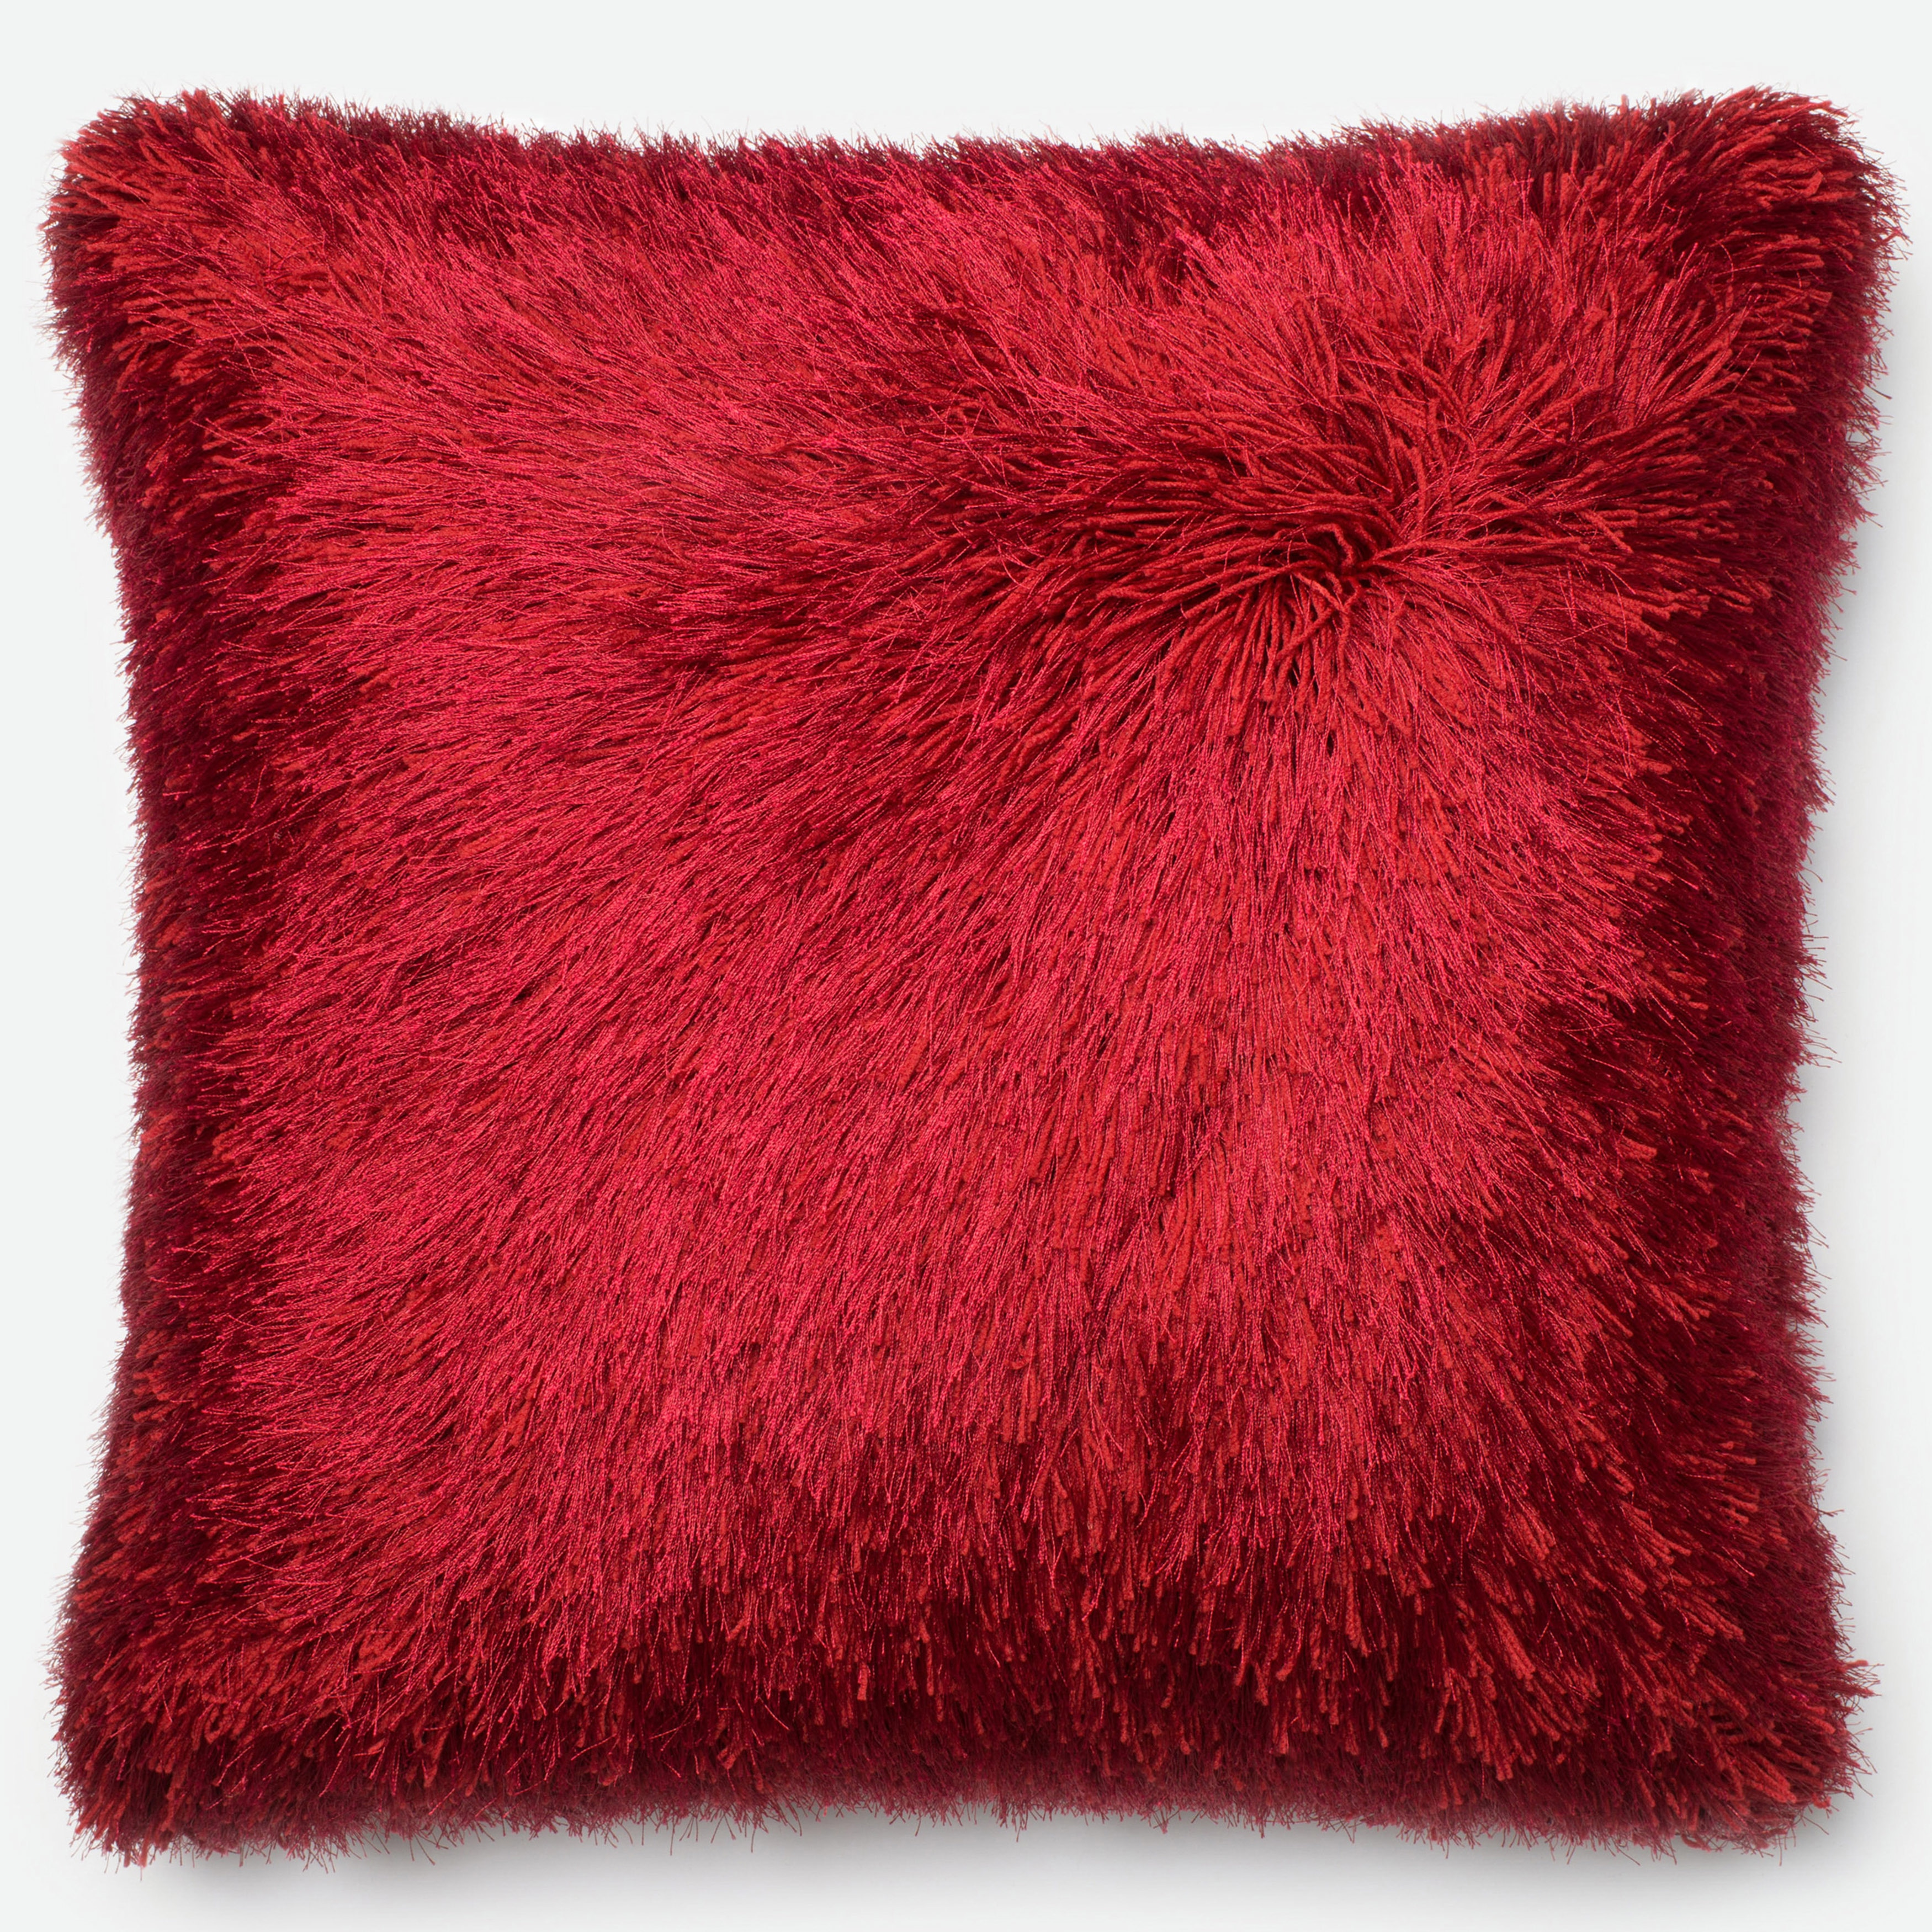 Luxe Solid Shag Down Feather or Polyester Filled 22-inch Throw Pillow or  Pillow Cover - Free Shipping Today - Overstock.com - 17660622